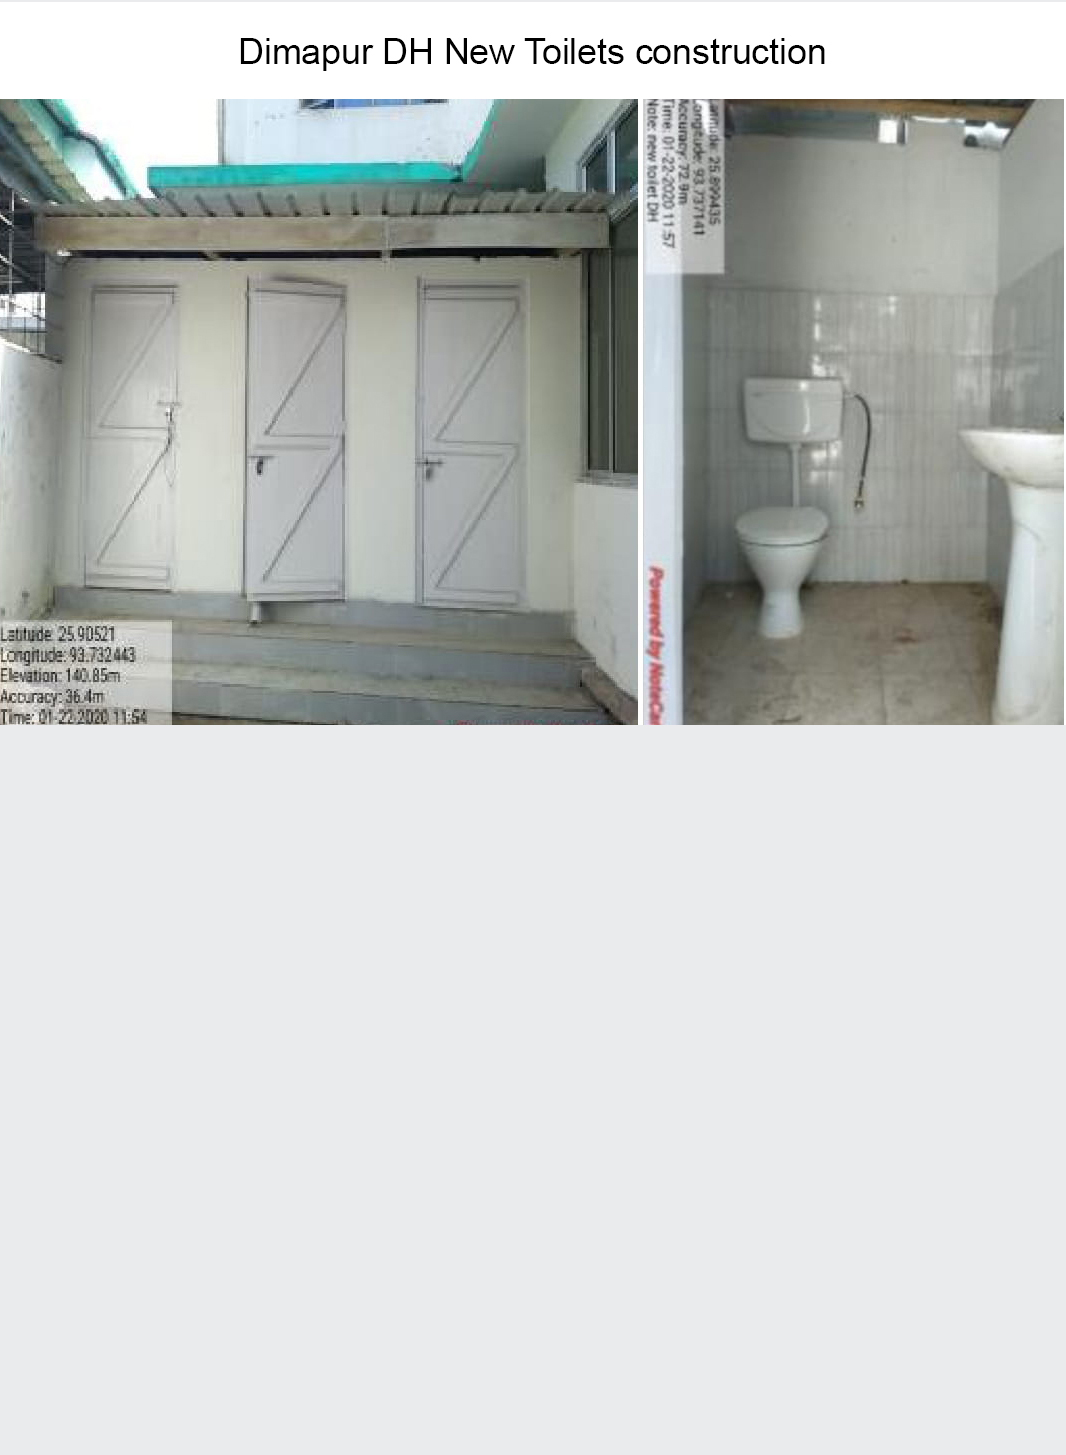 Dimapur-DH-New-Toilets-construction